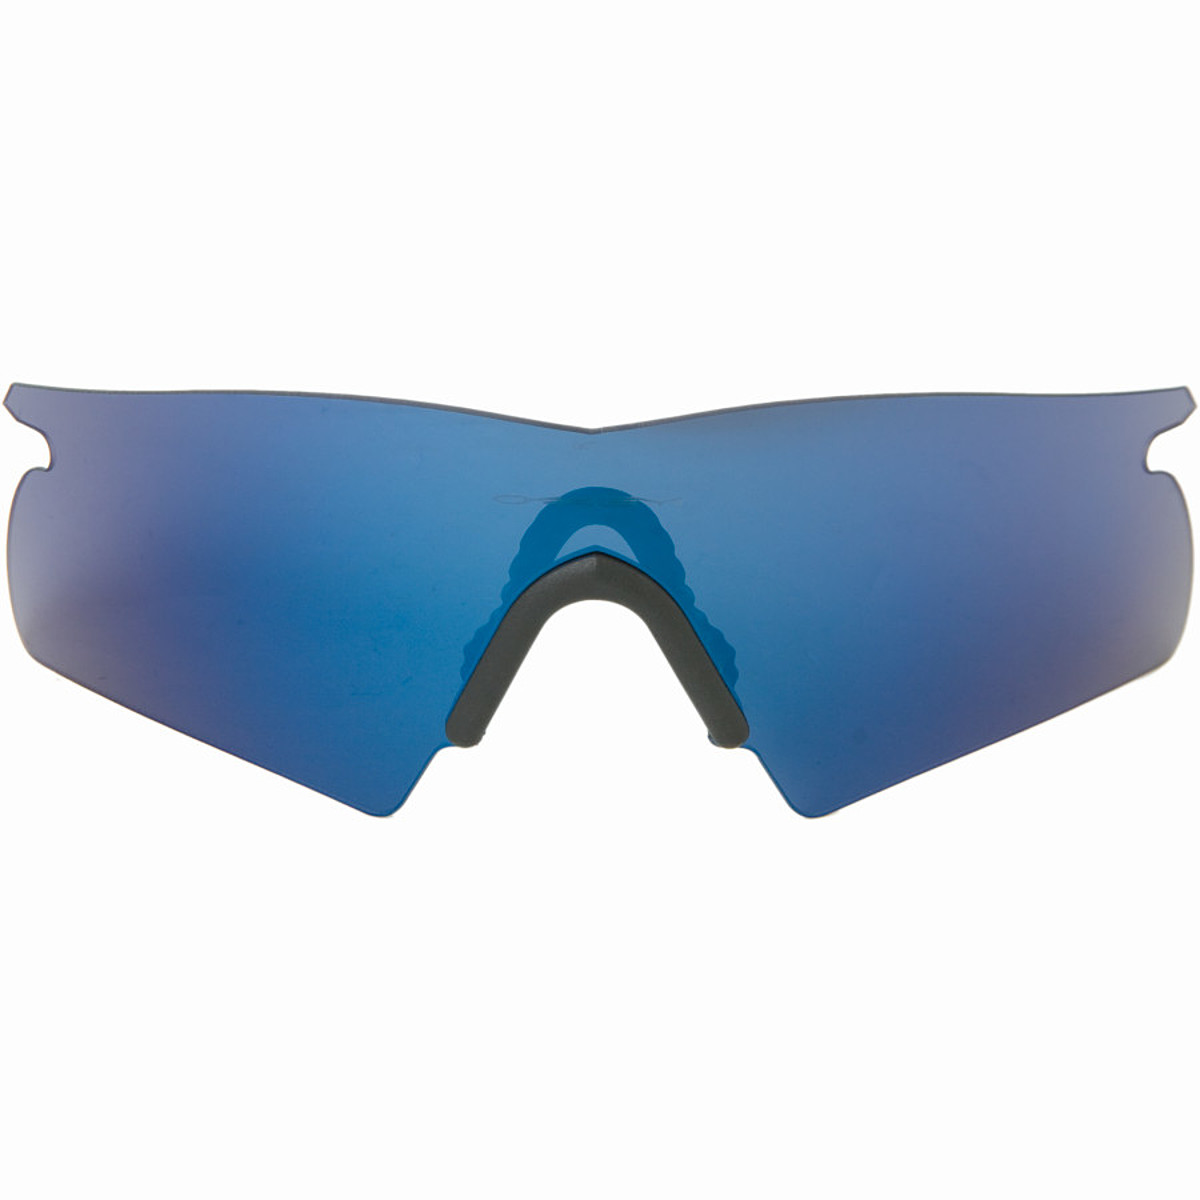 Oakley M Frame Hybrid Accessory Lens Kit